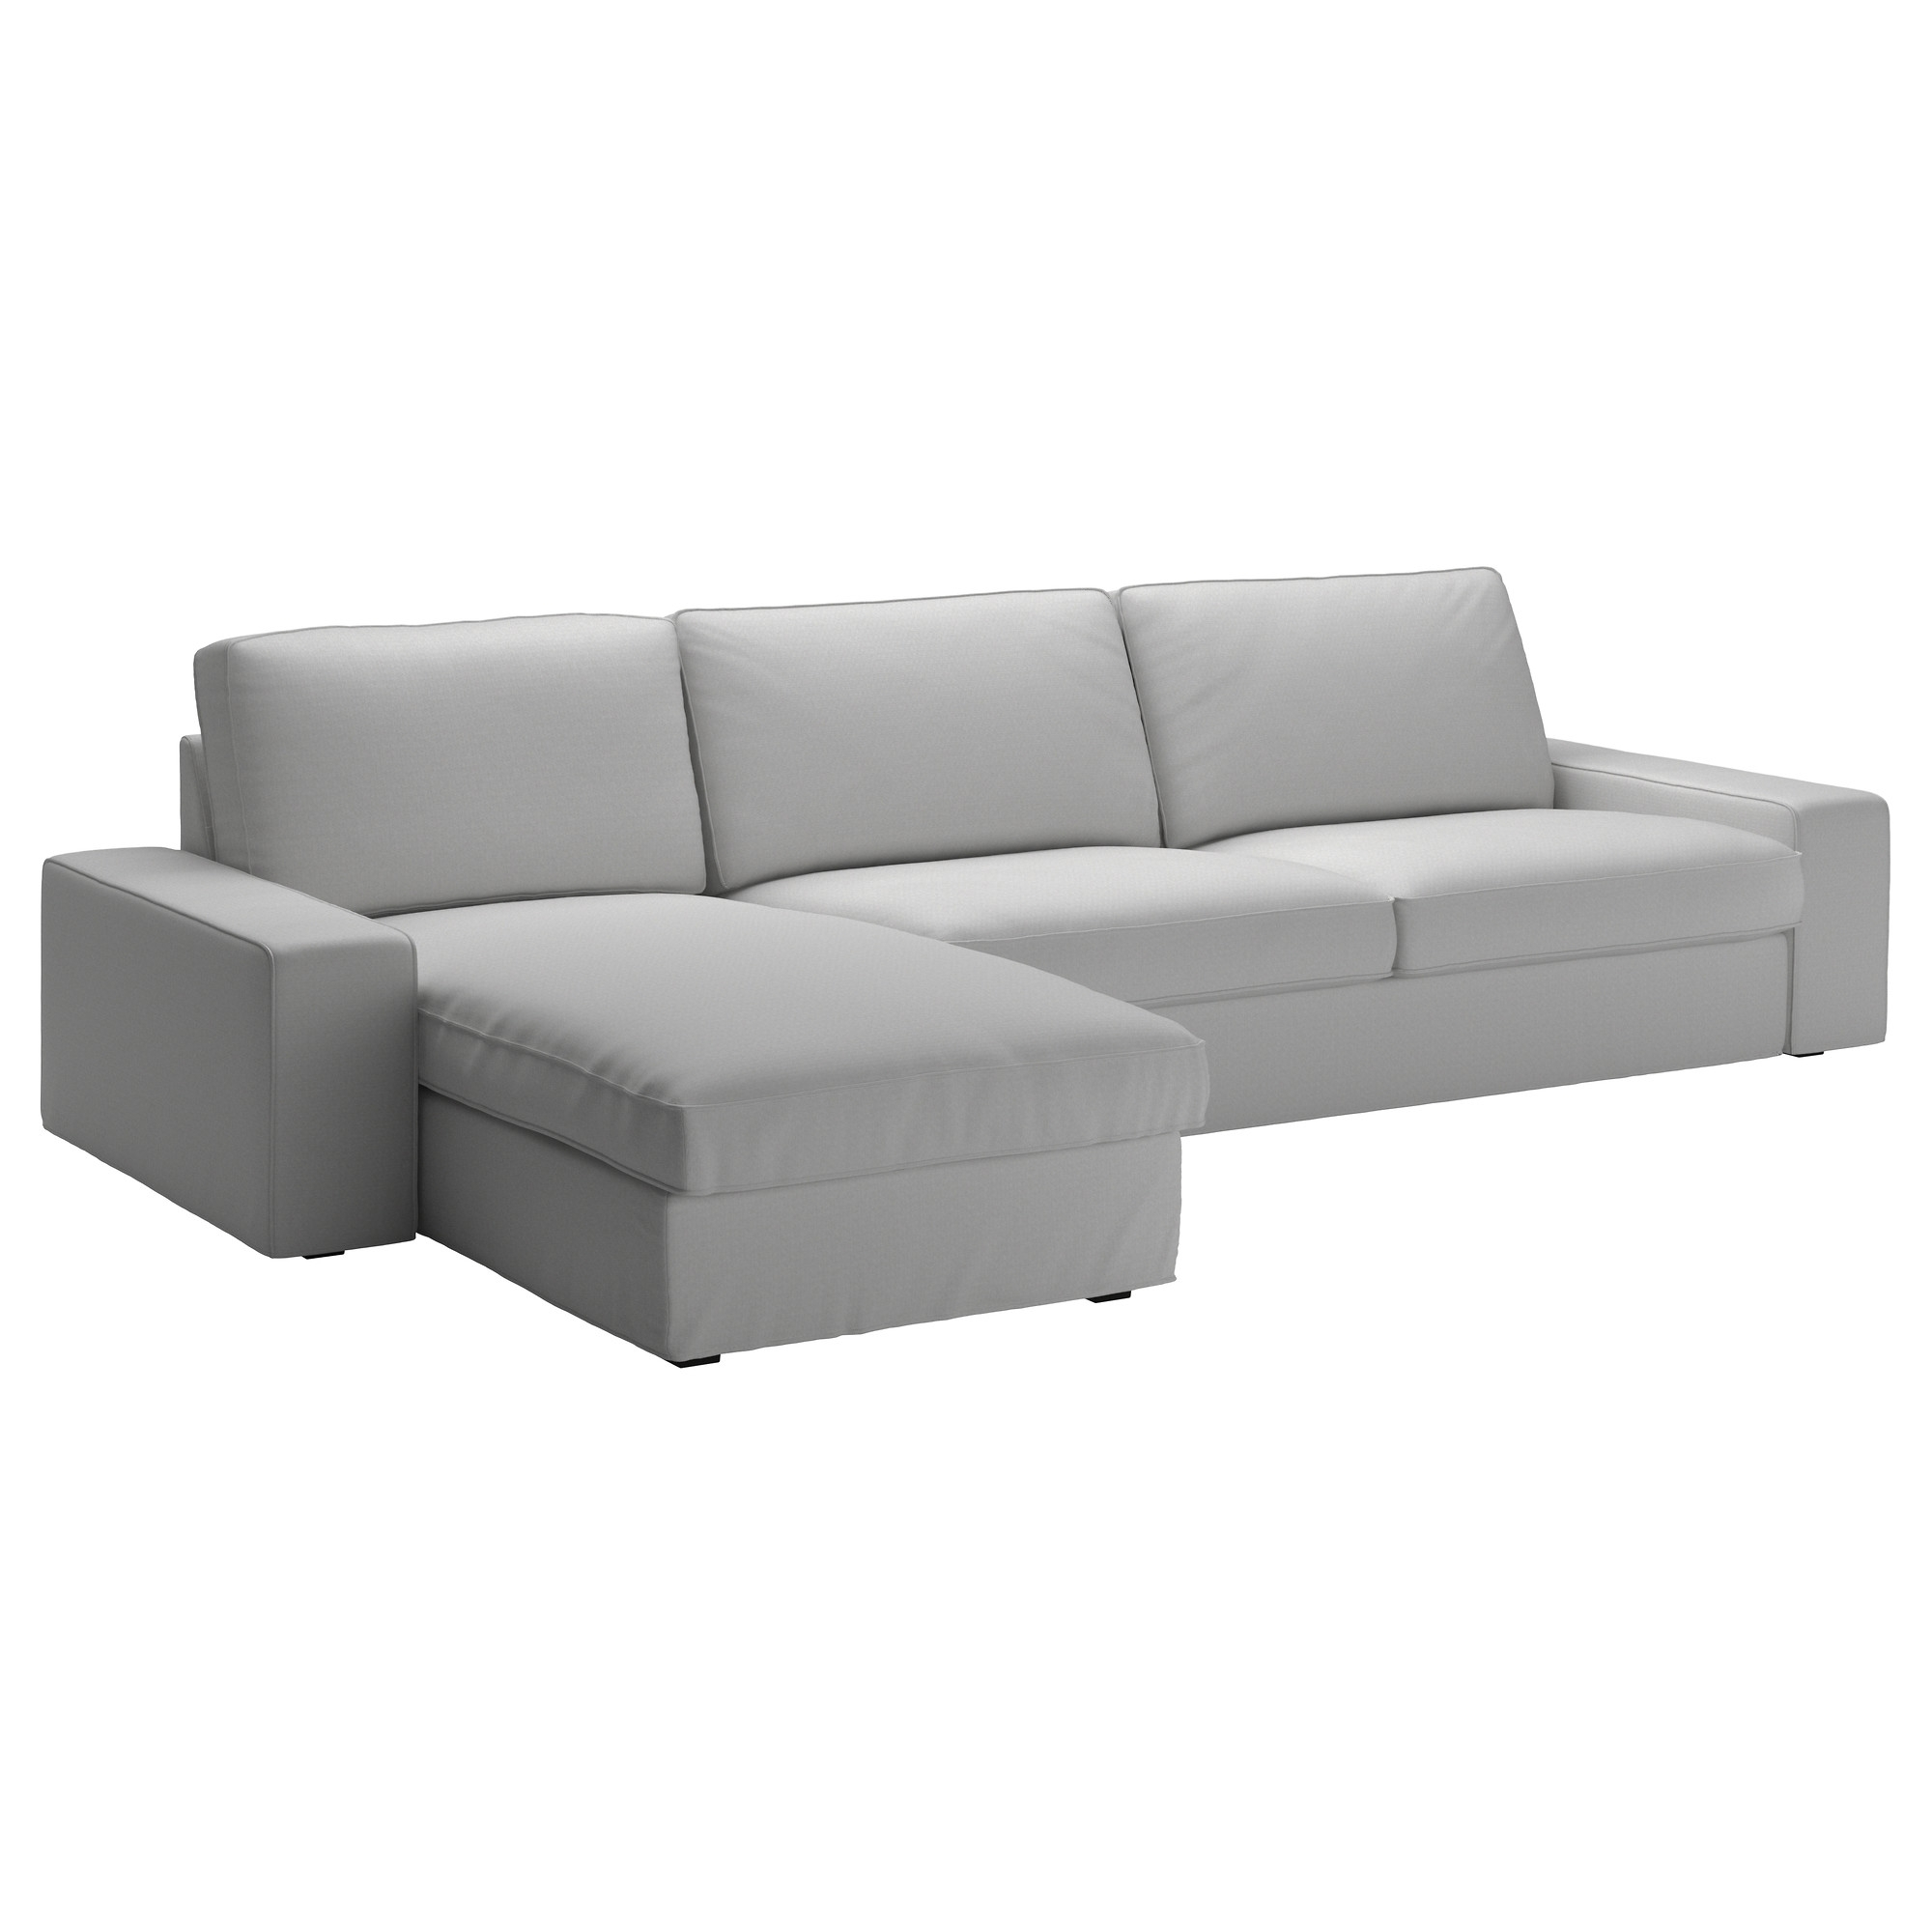 Most Popular Ikea Sectional Sofa Beds Within Kivik Sectional, 4 Seat – Orrsta Light Gray – Ikea (View 8 of 20)